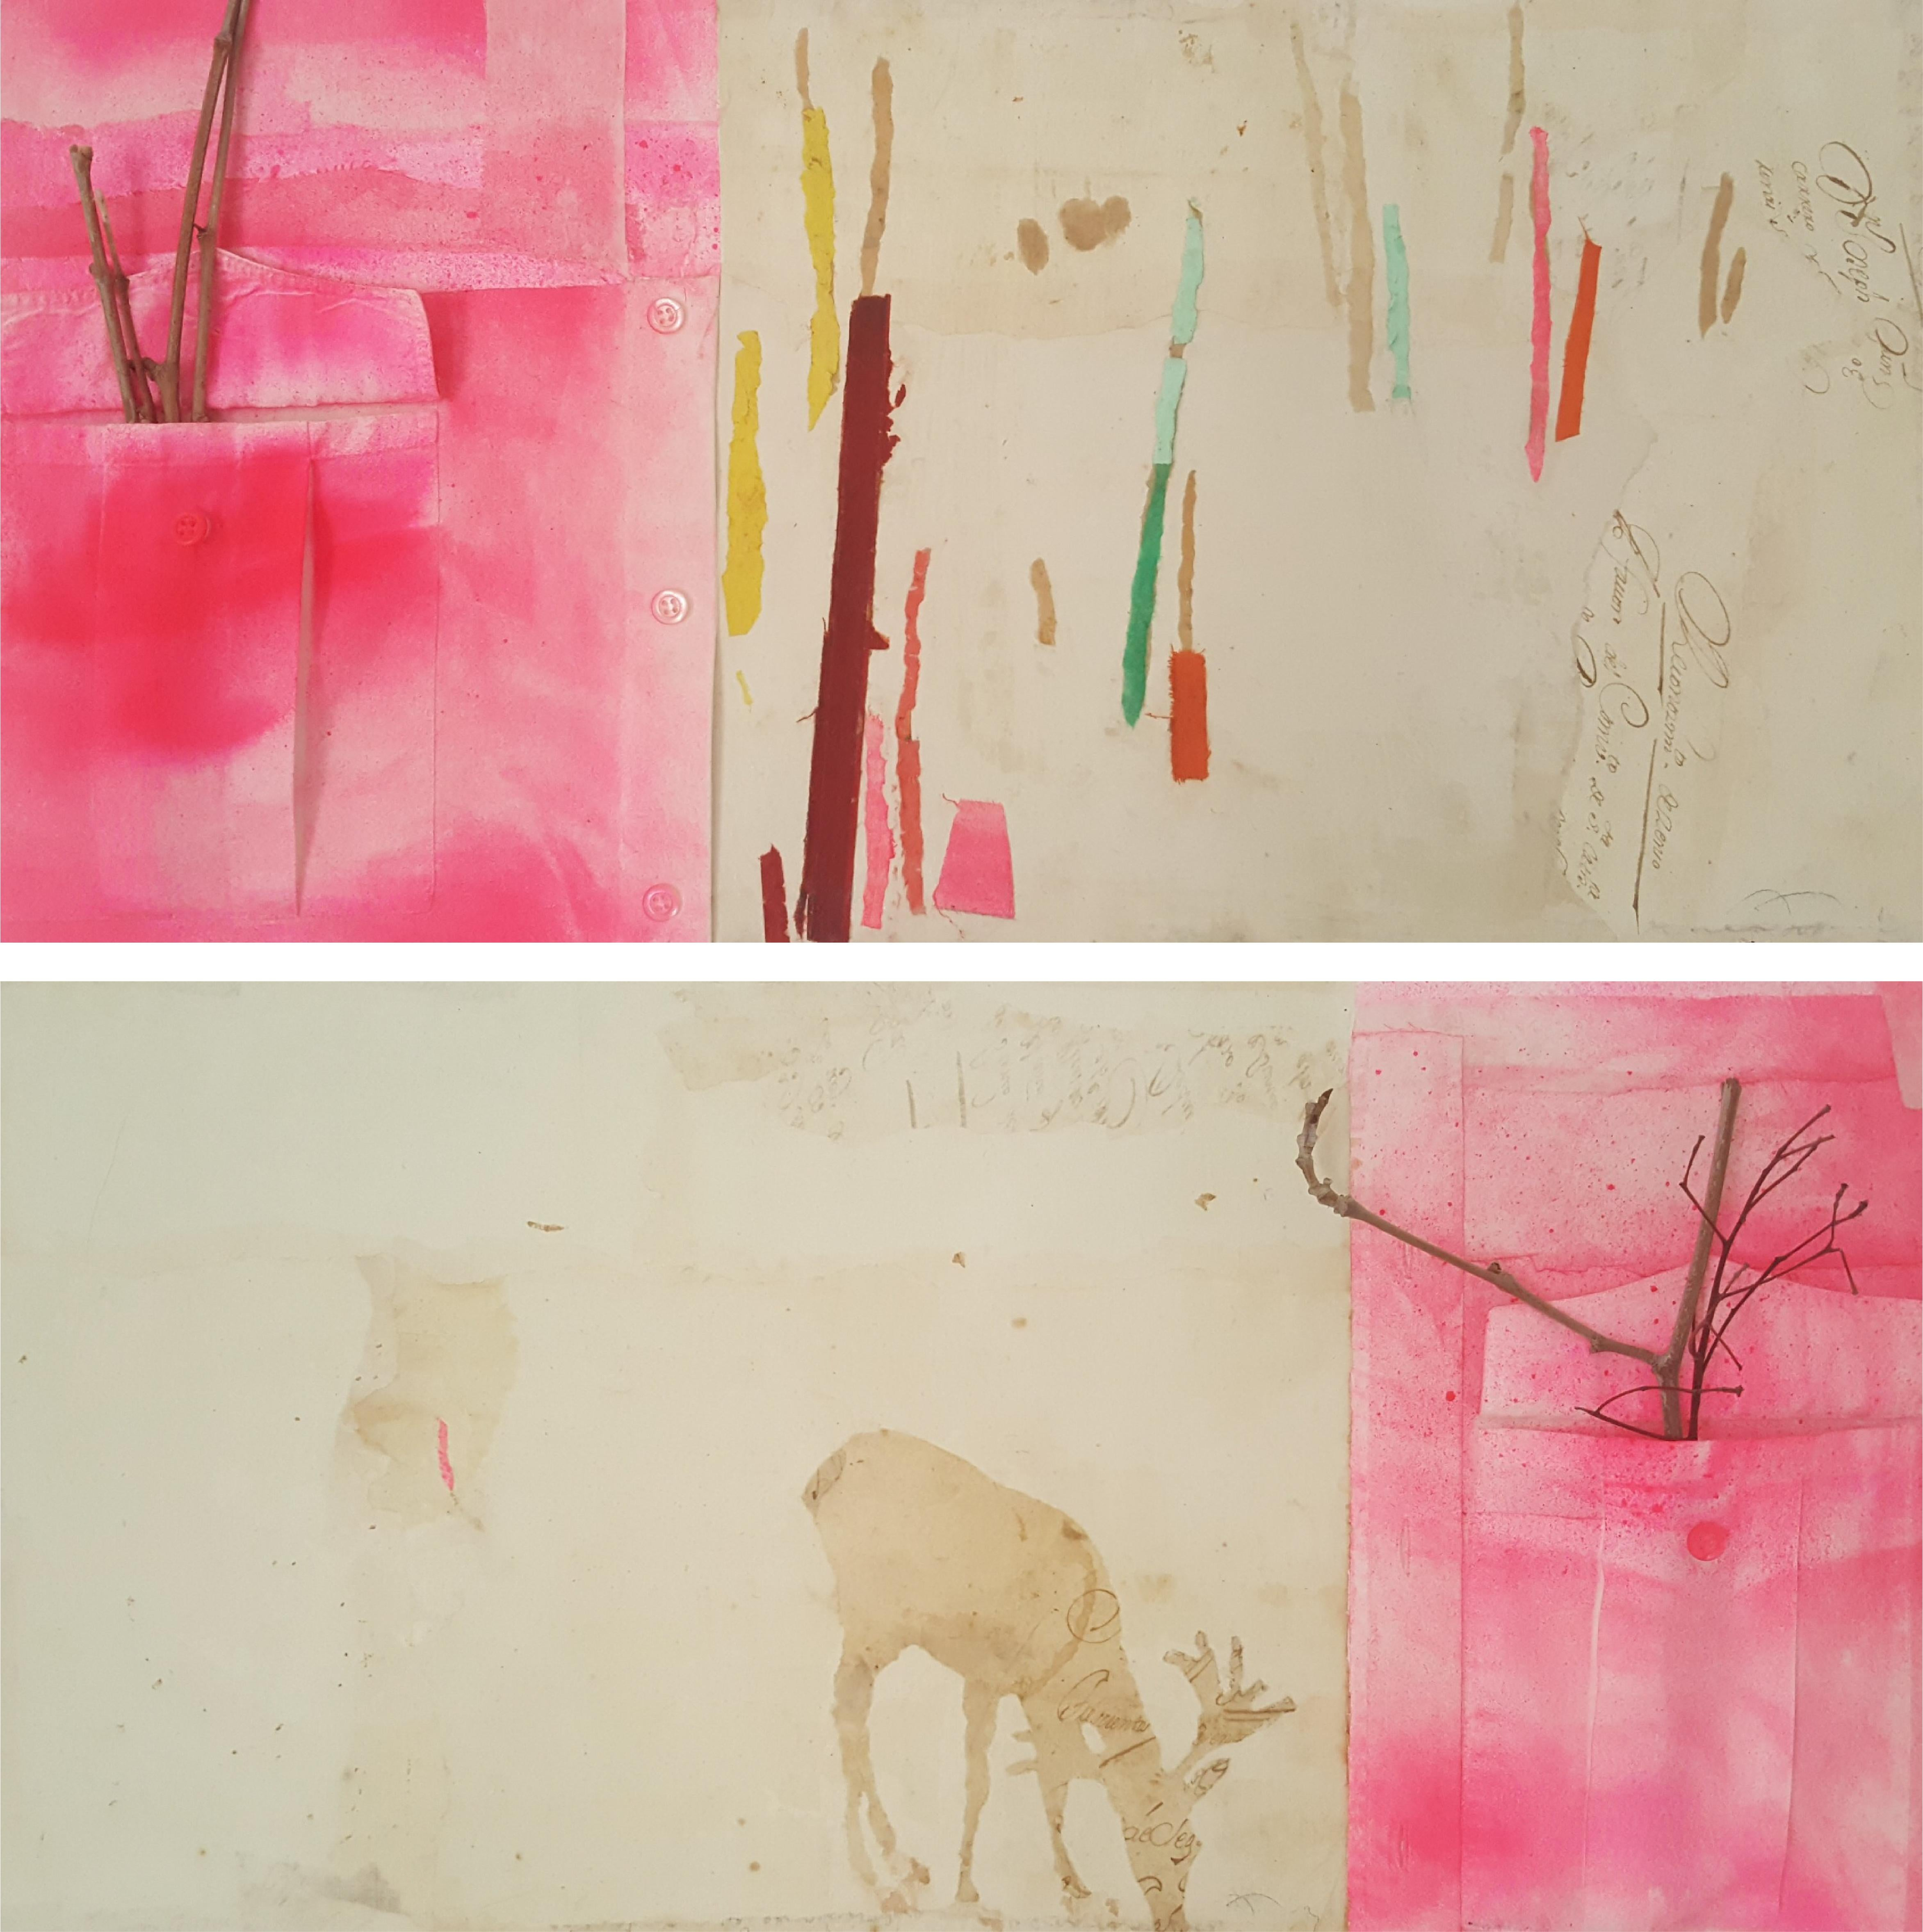 Buxaca I & II - 21st Century, Contemporary, Old Paper, Medieval Ink, Collage